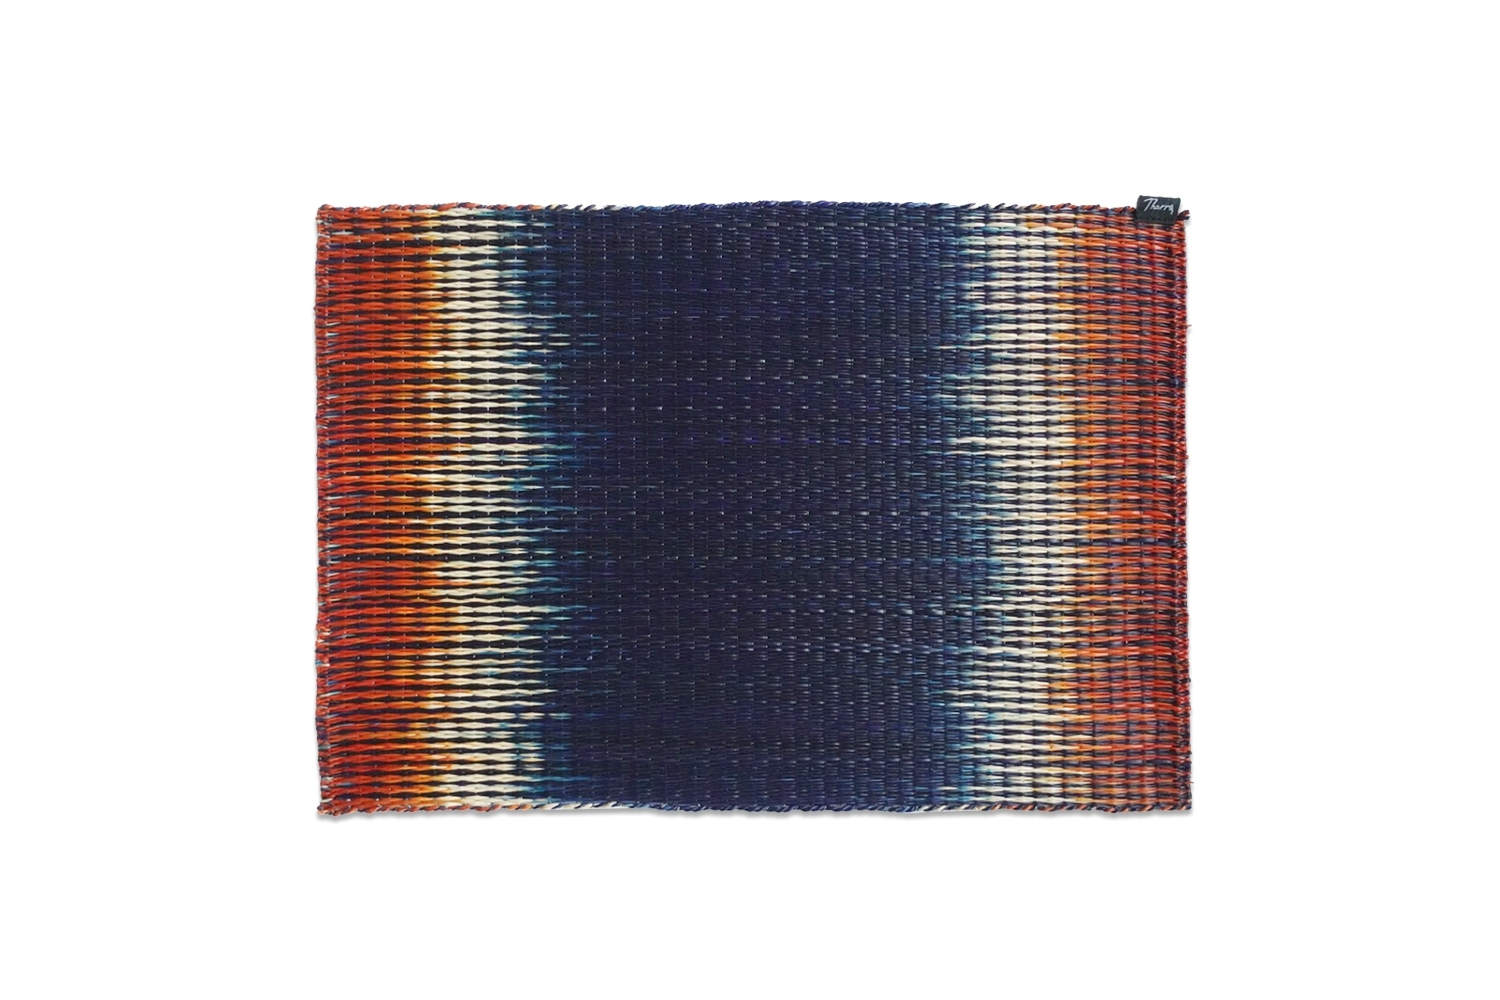 Mysterious orange and navy  placemat DNP-03